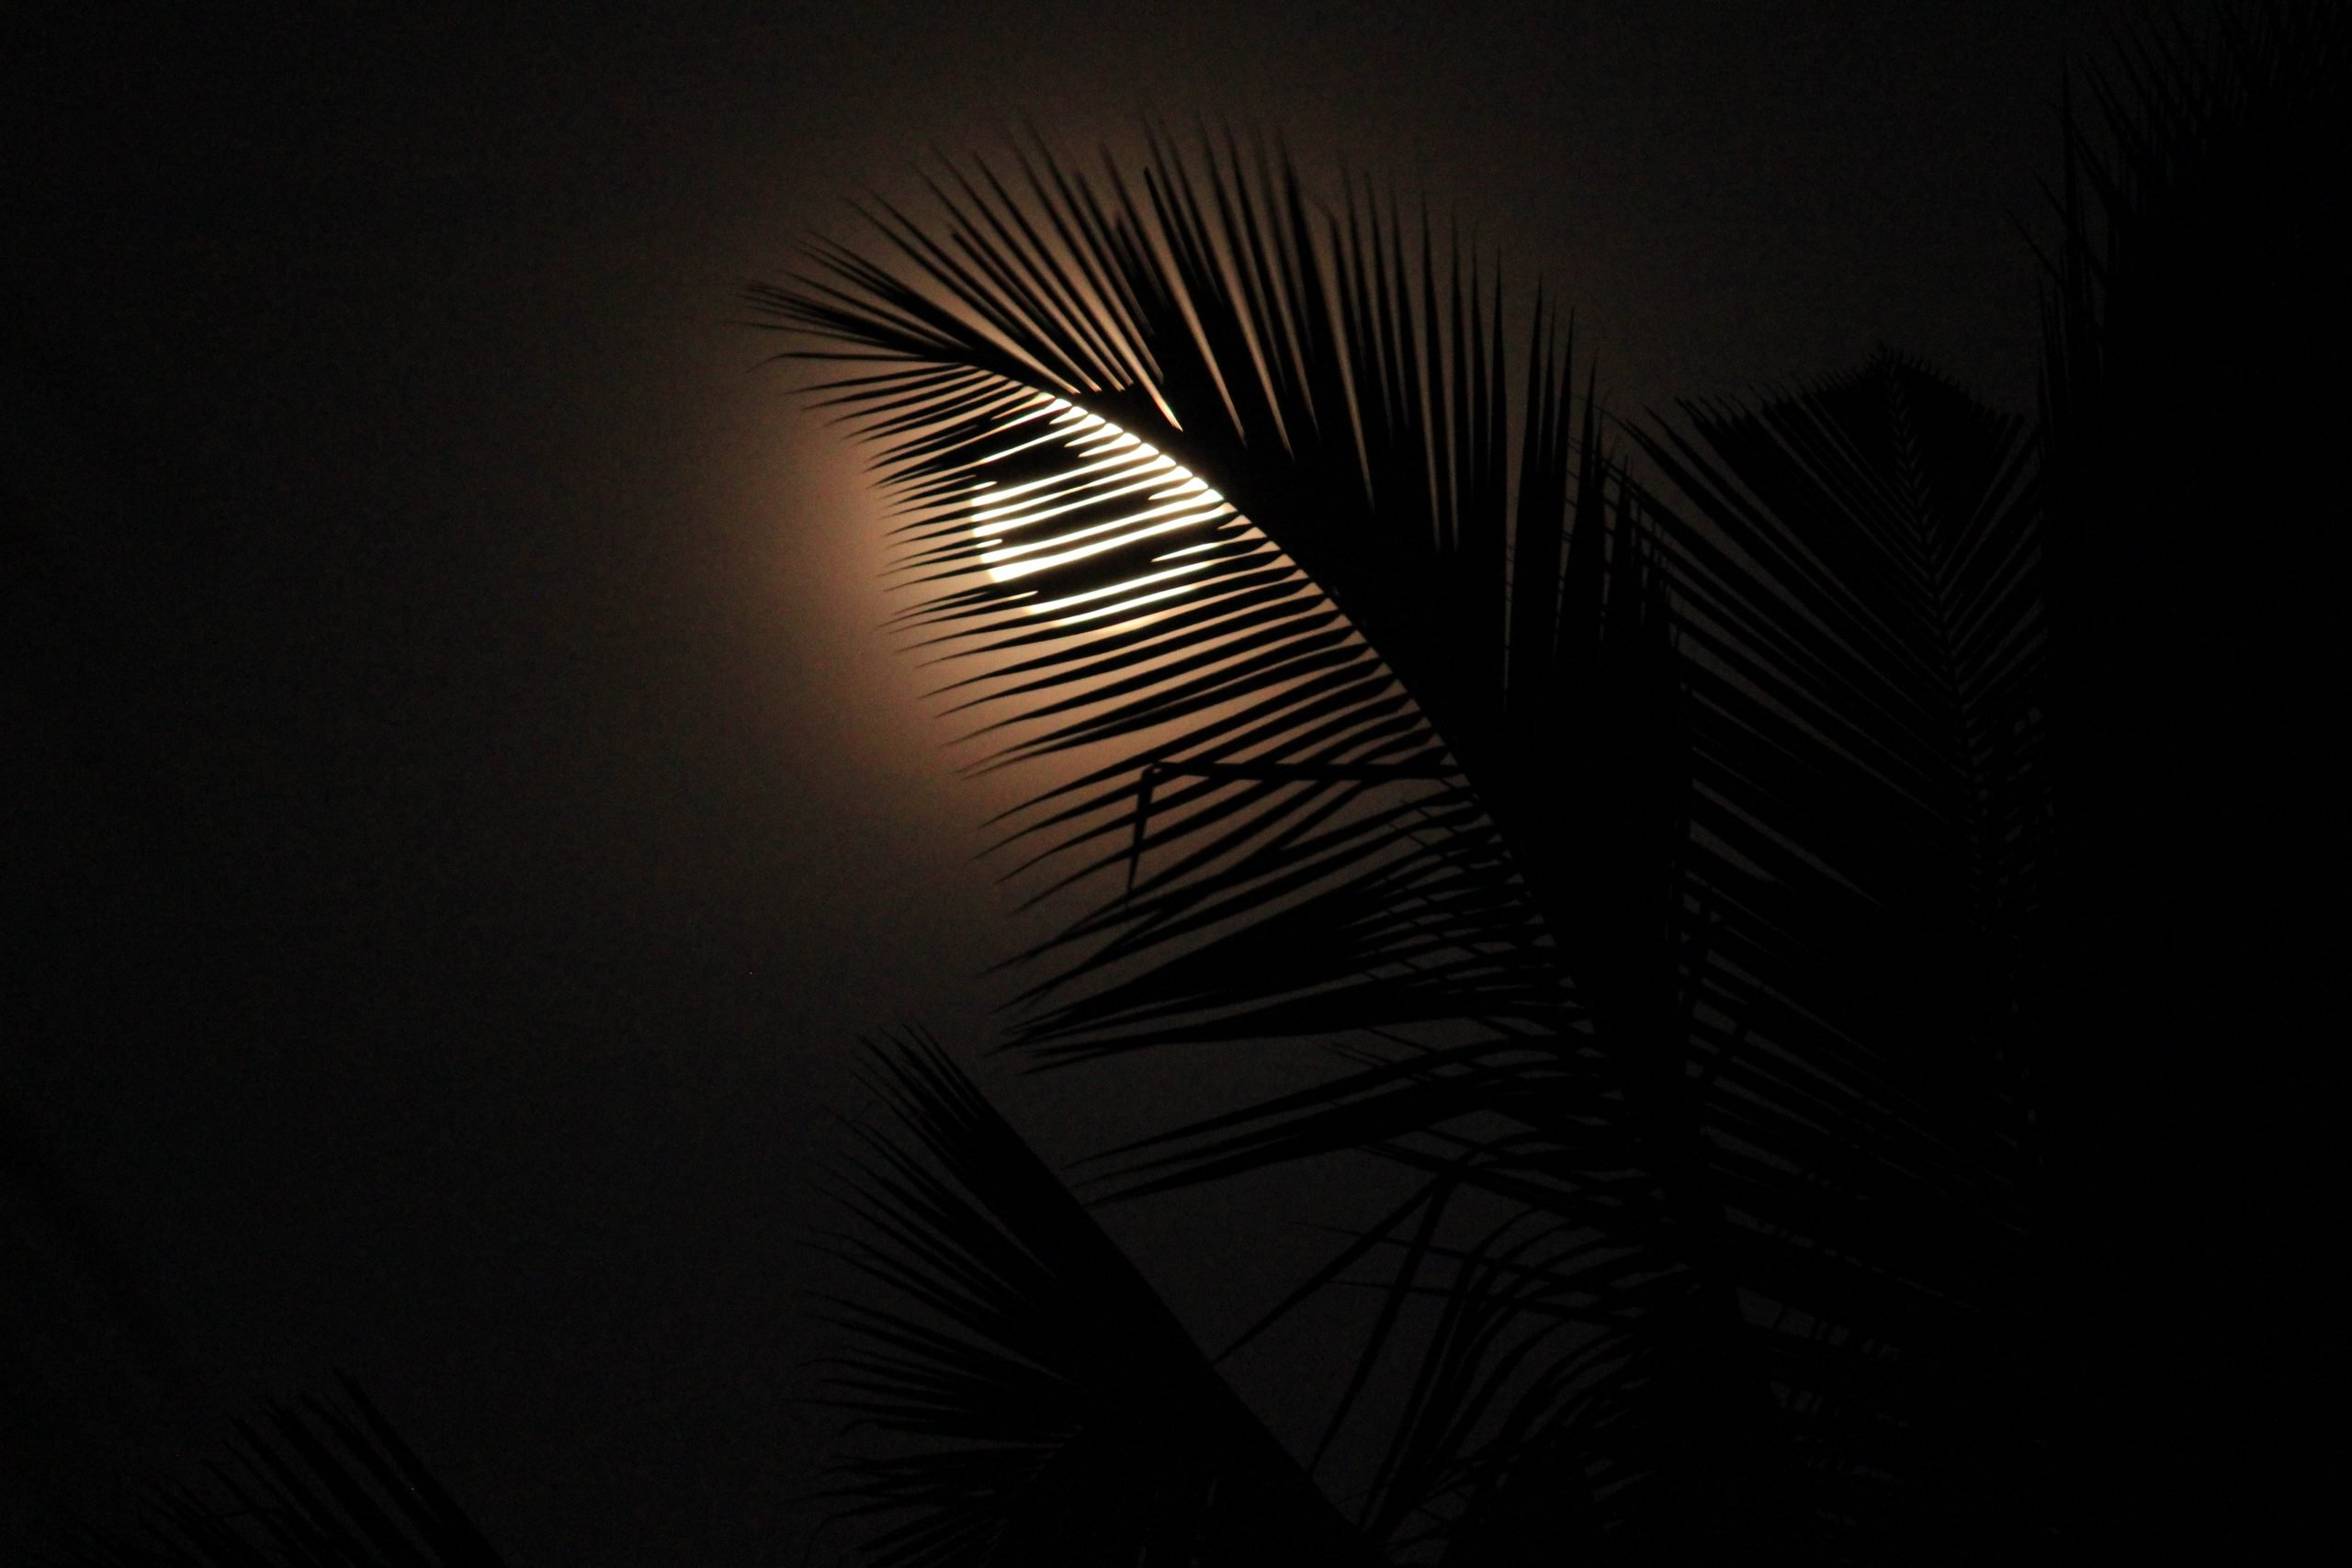 Moon through the tree leaves